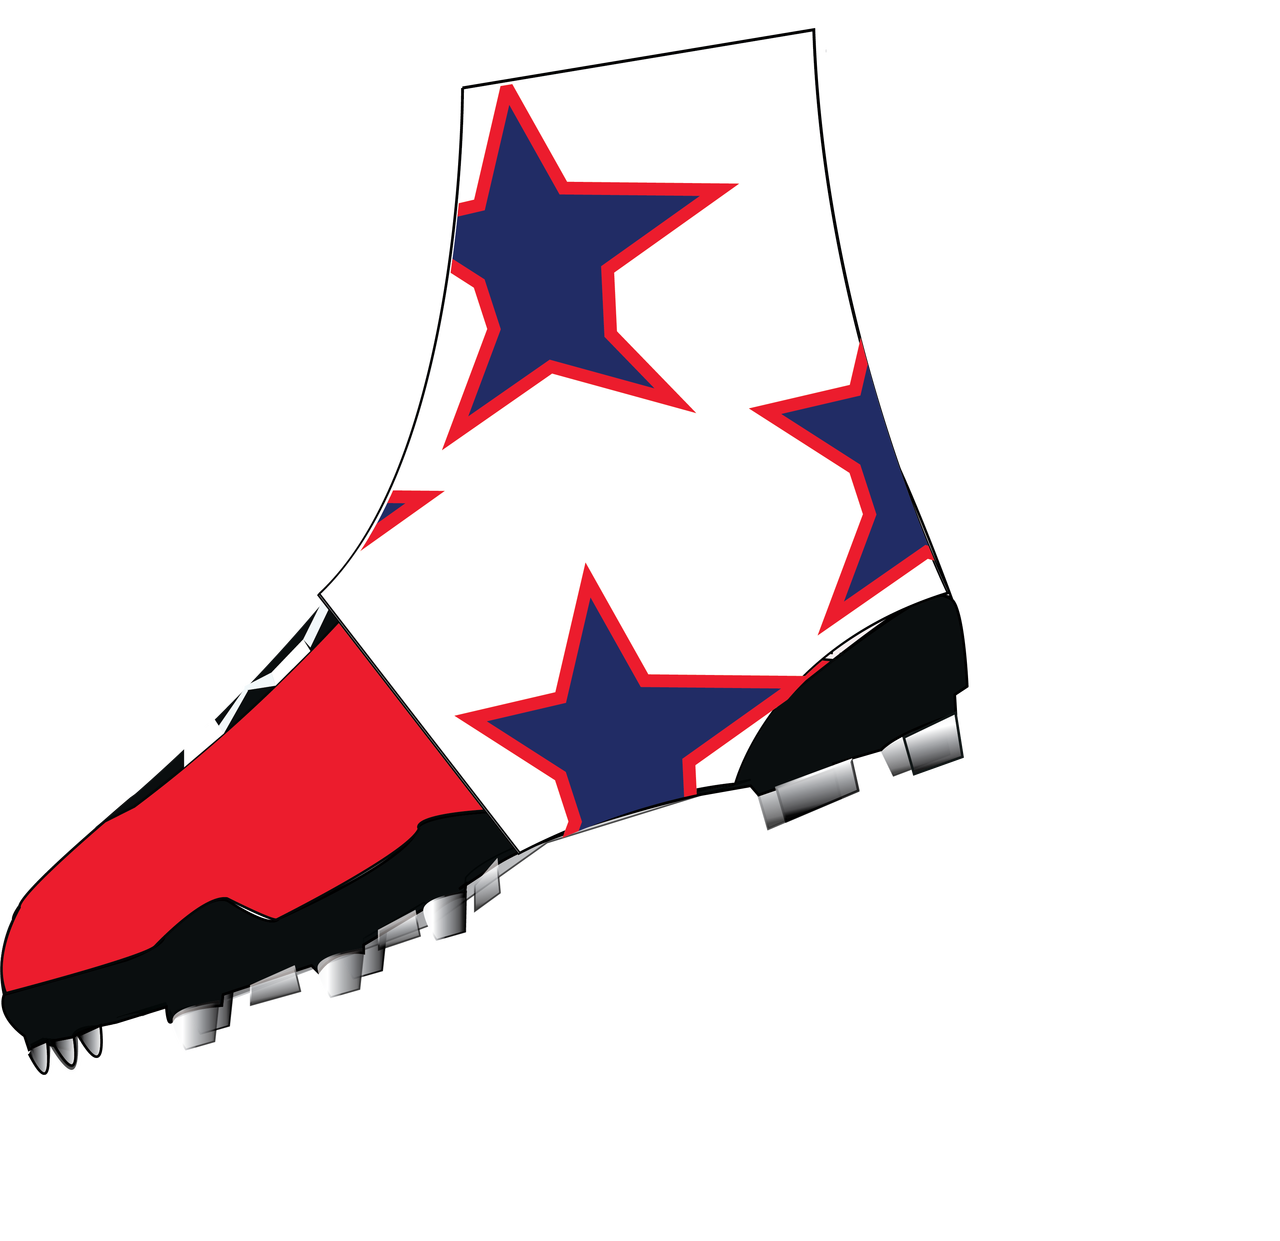 Baseball cleats clipart clip royalty free stock White, Navy Blue, and Red